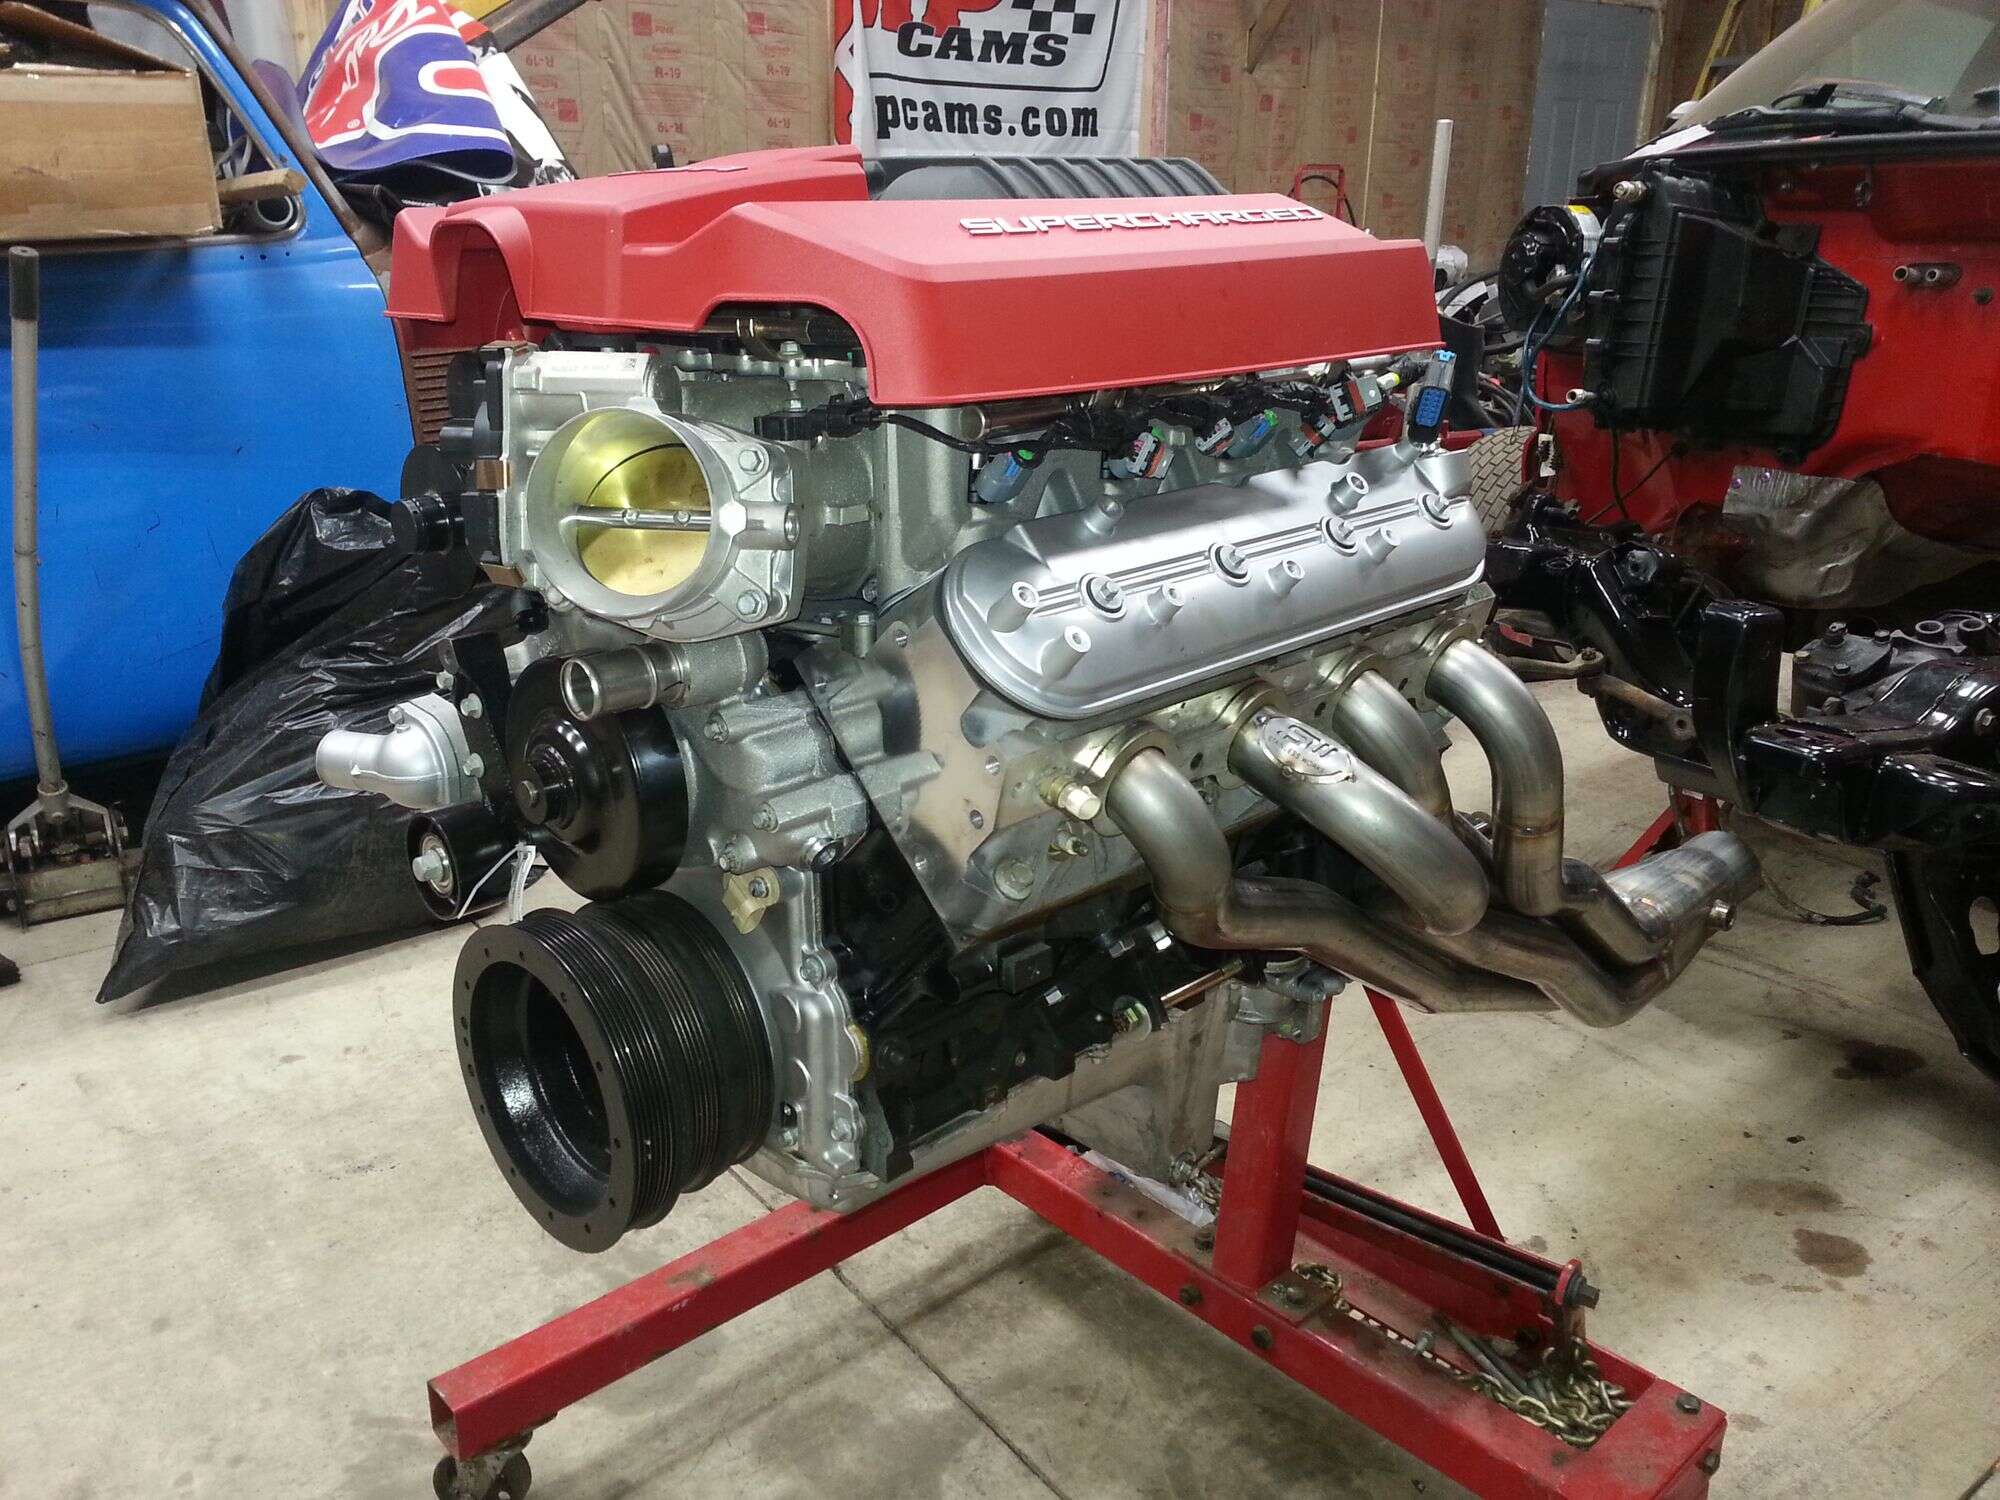 This Chevy S 10 Xtreme Lives Up To Its Name With Supercharged Ls V 8